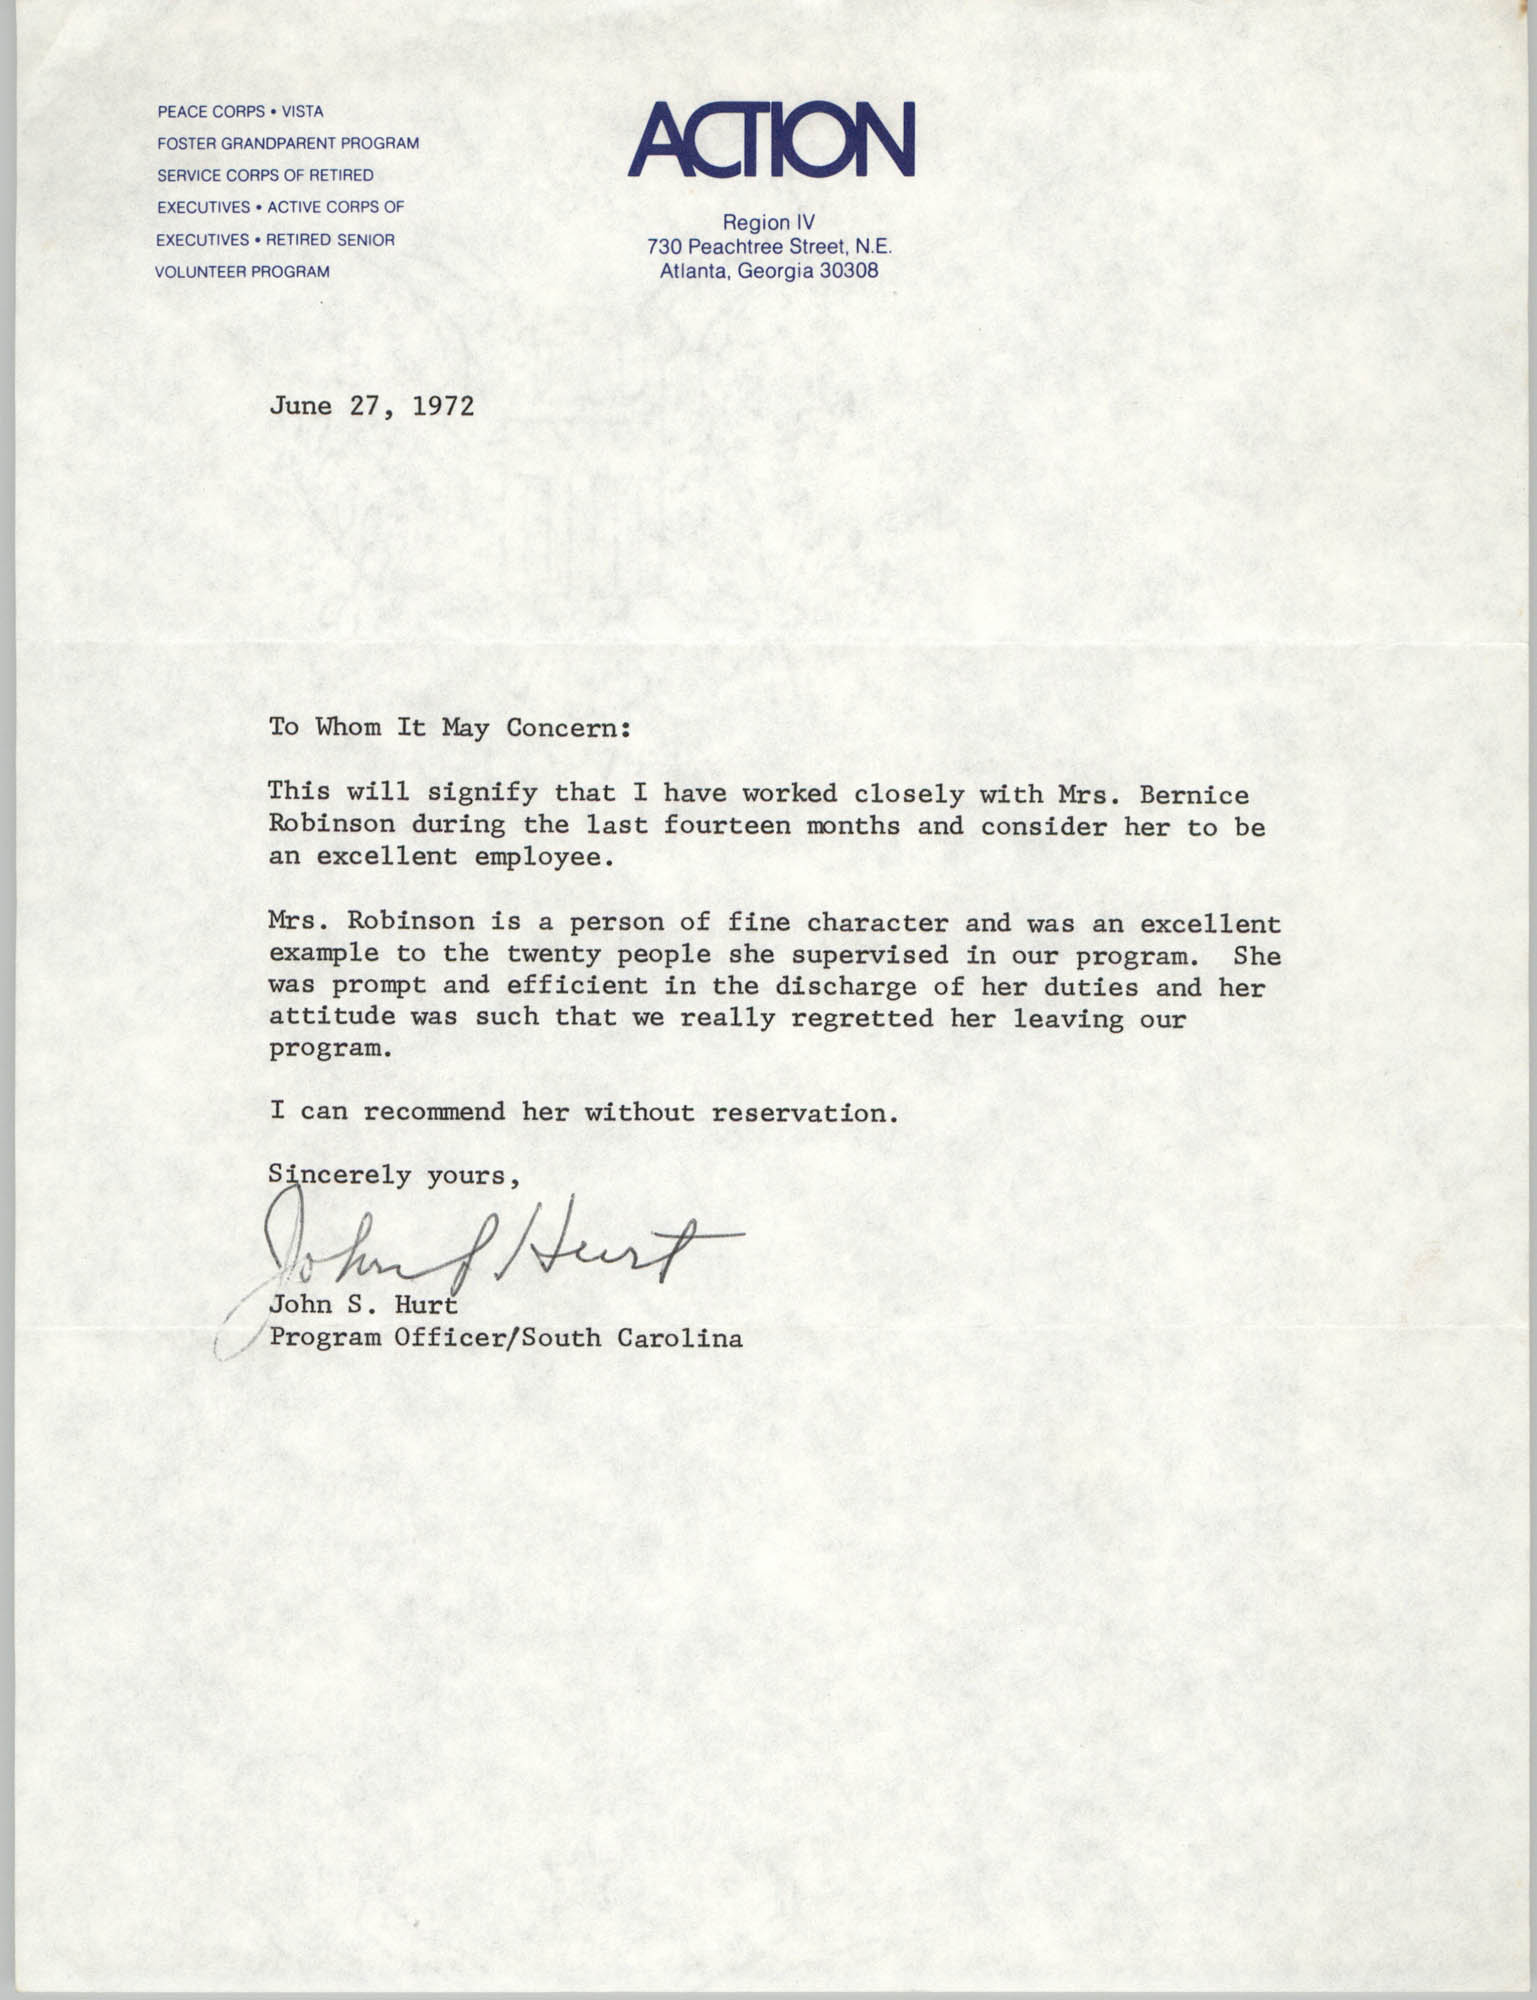 Letter from John S. Hurt to Action Region IV, June 27, 1971